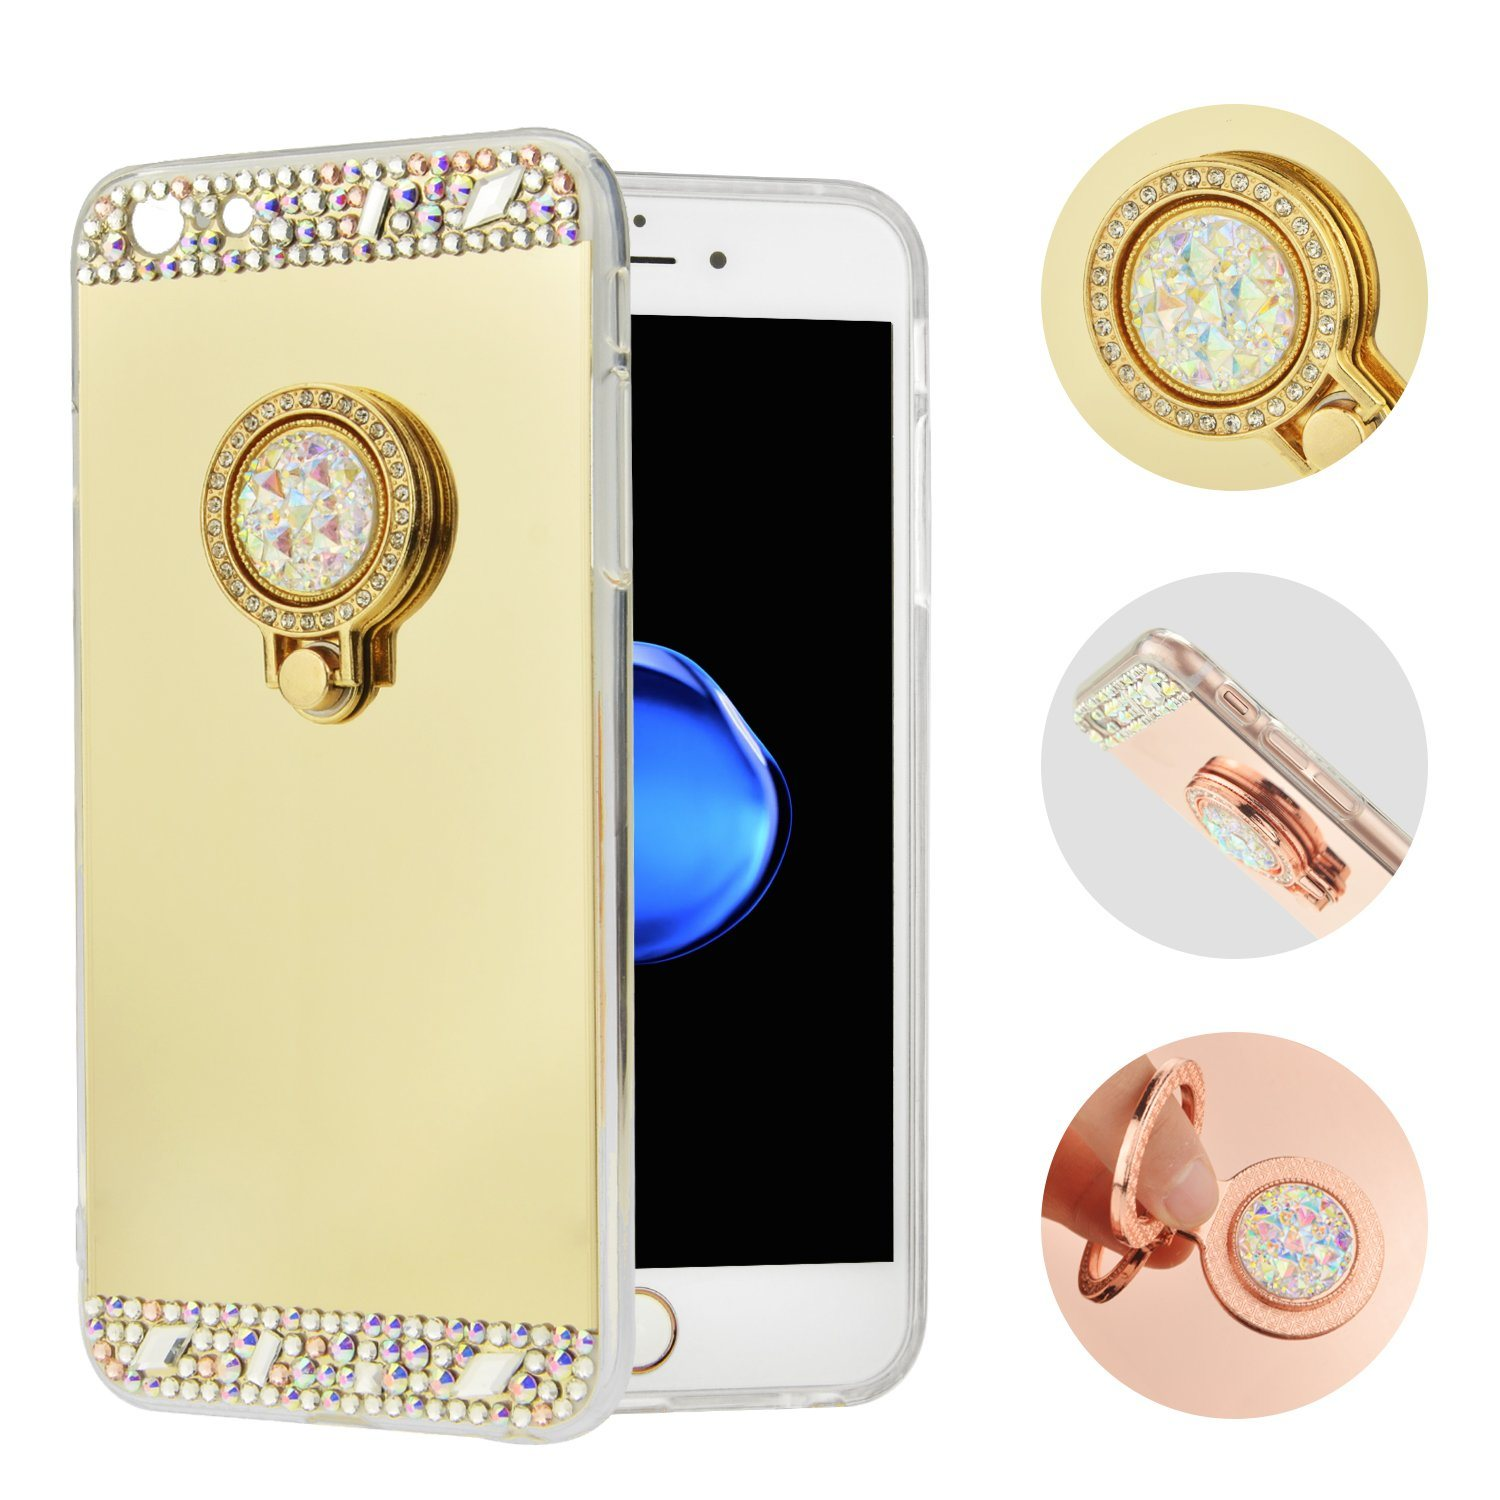 with Car Holder TPU Mirror Case for iPhone 7 7plus P8lite P9 Mobile Phone Cover (XSTJ-0003)